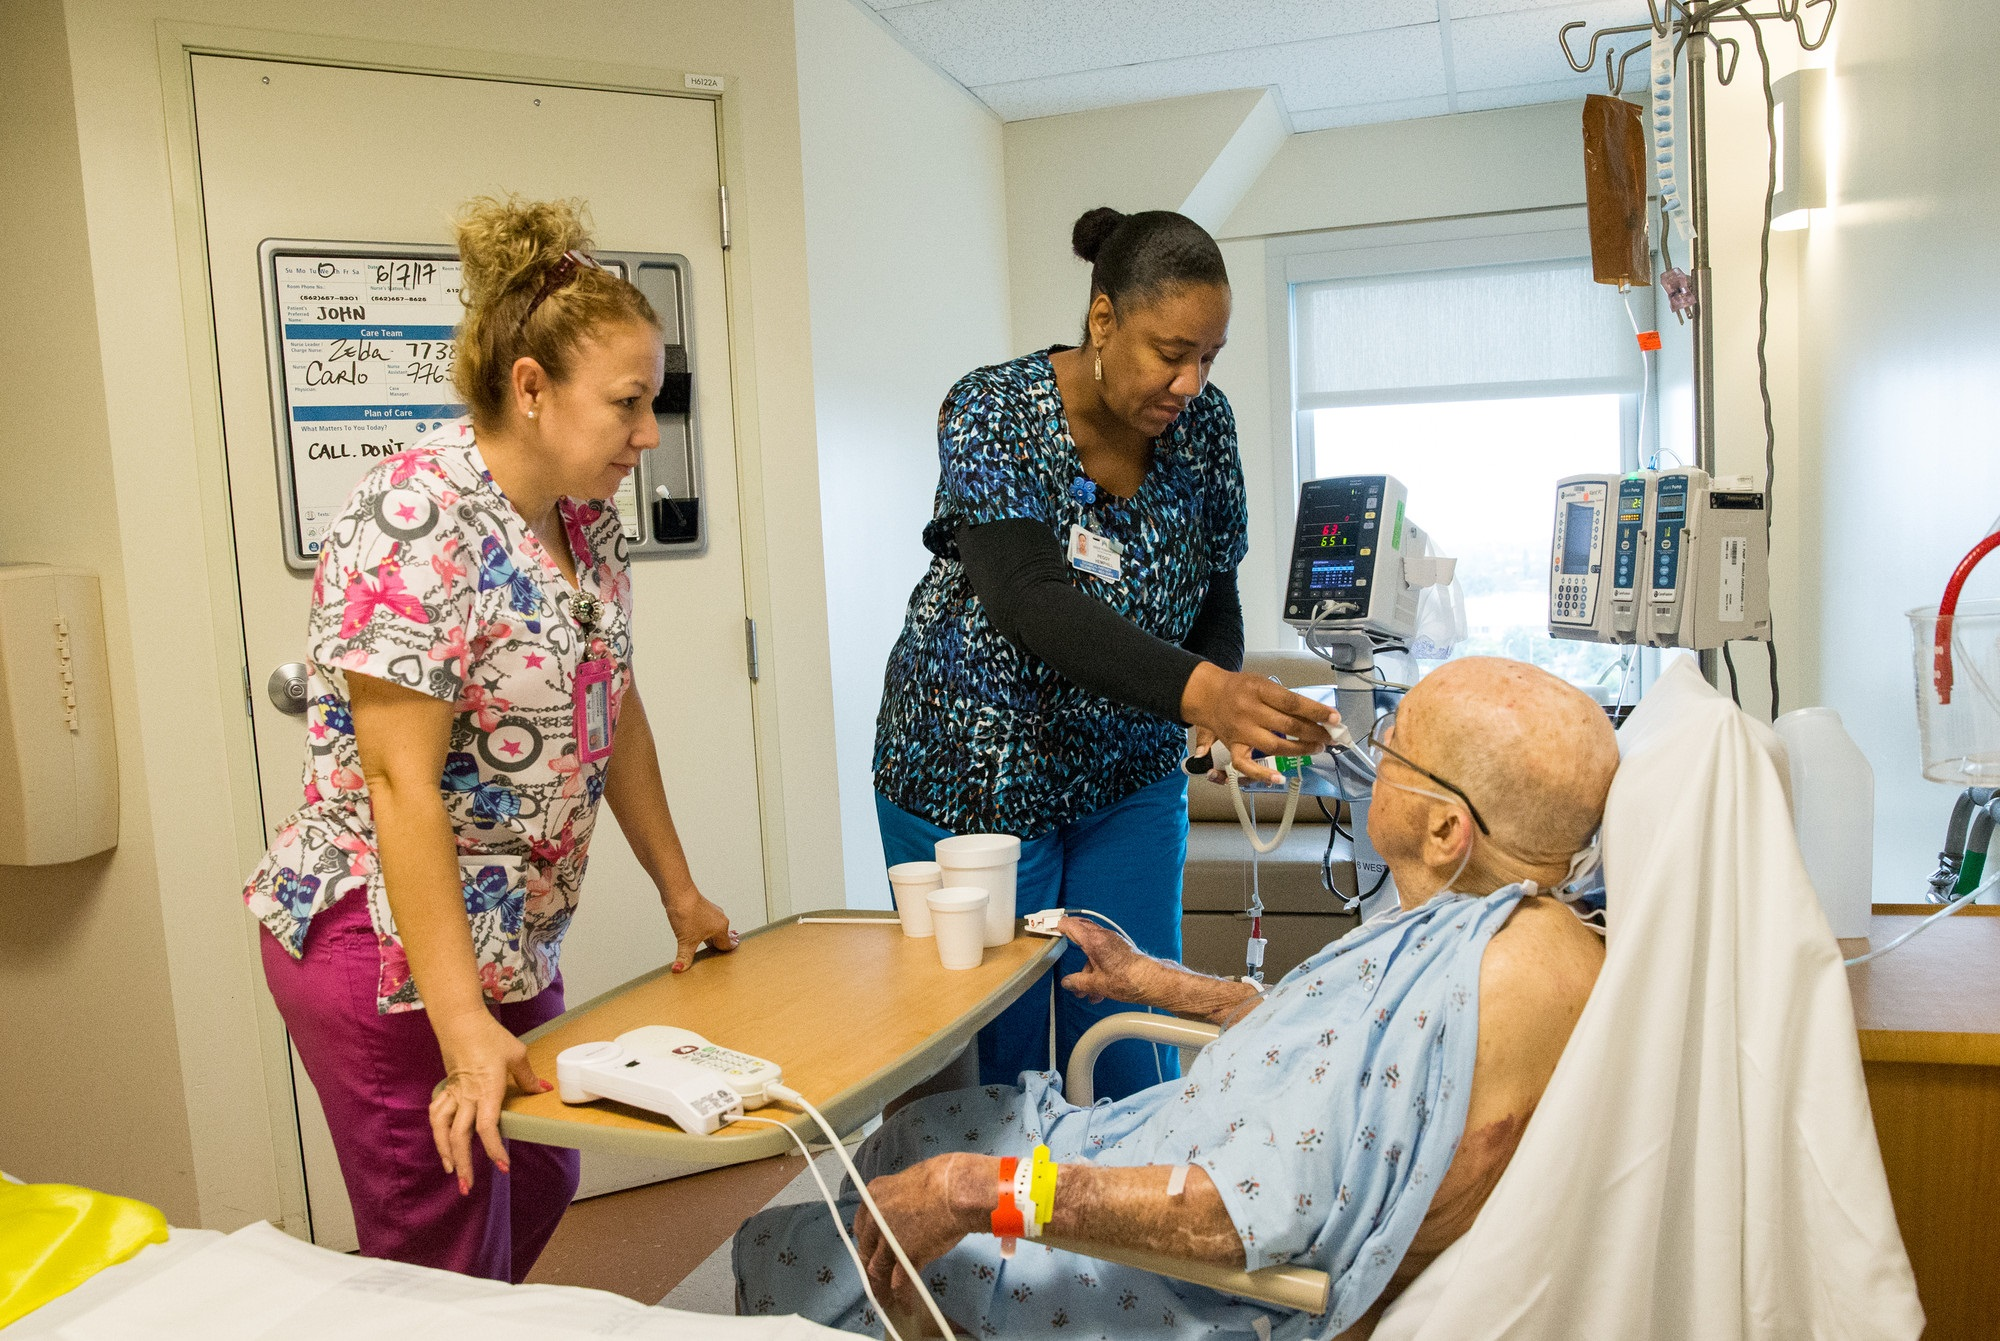 Two caregivers in a hospital room with an elderly patient